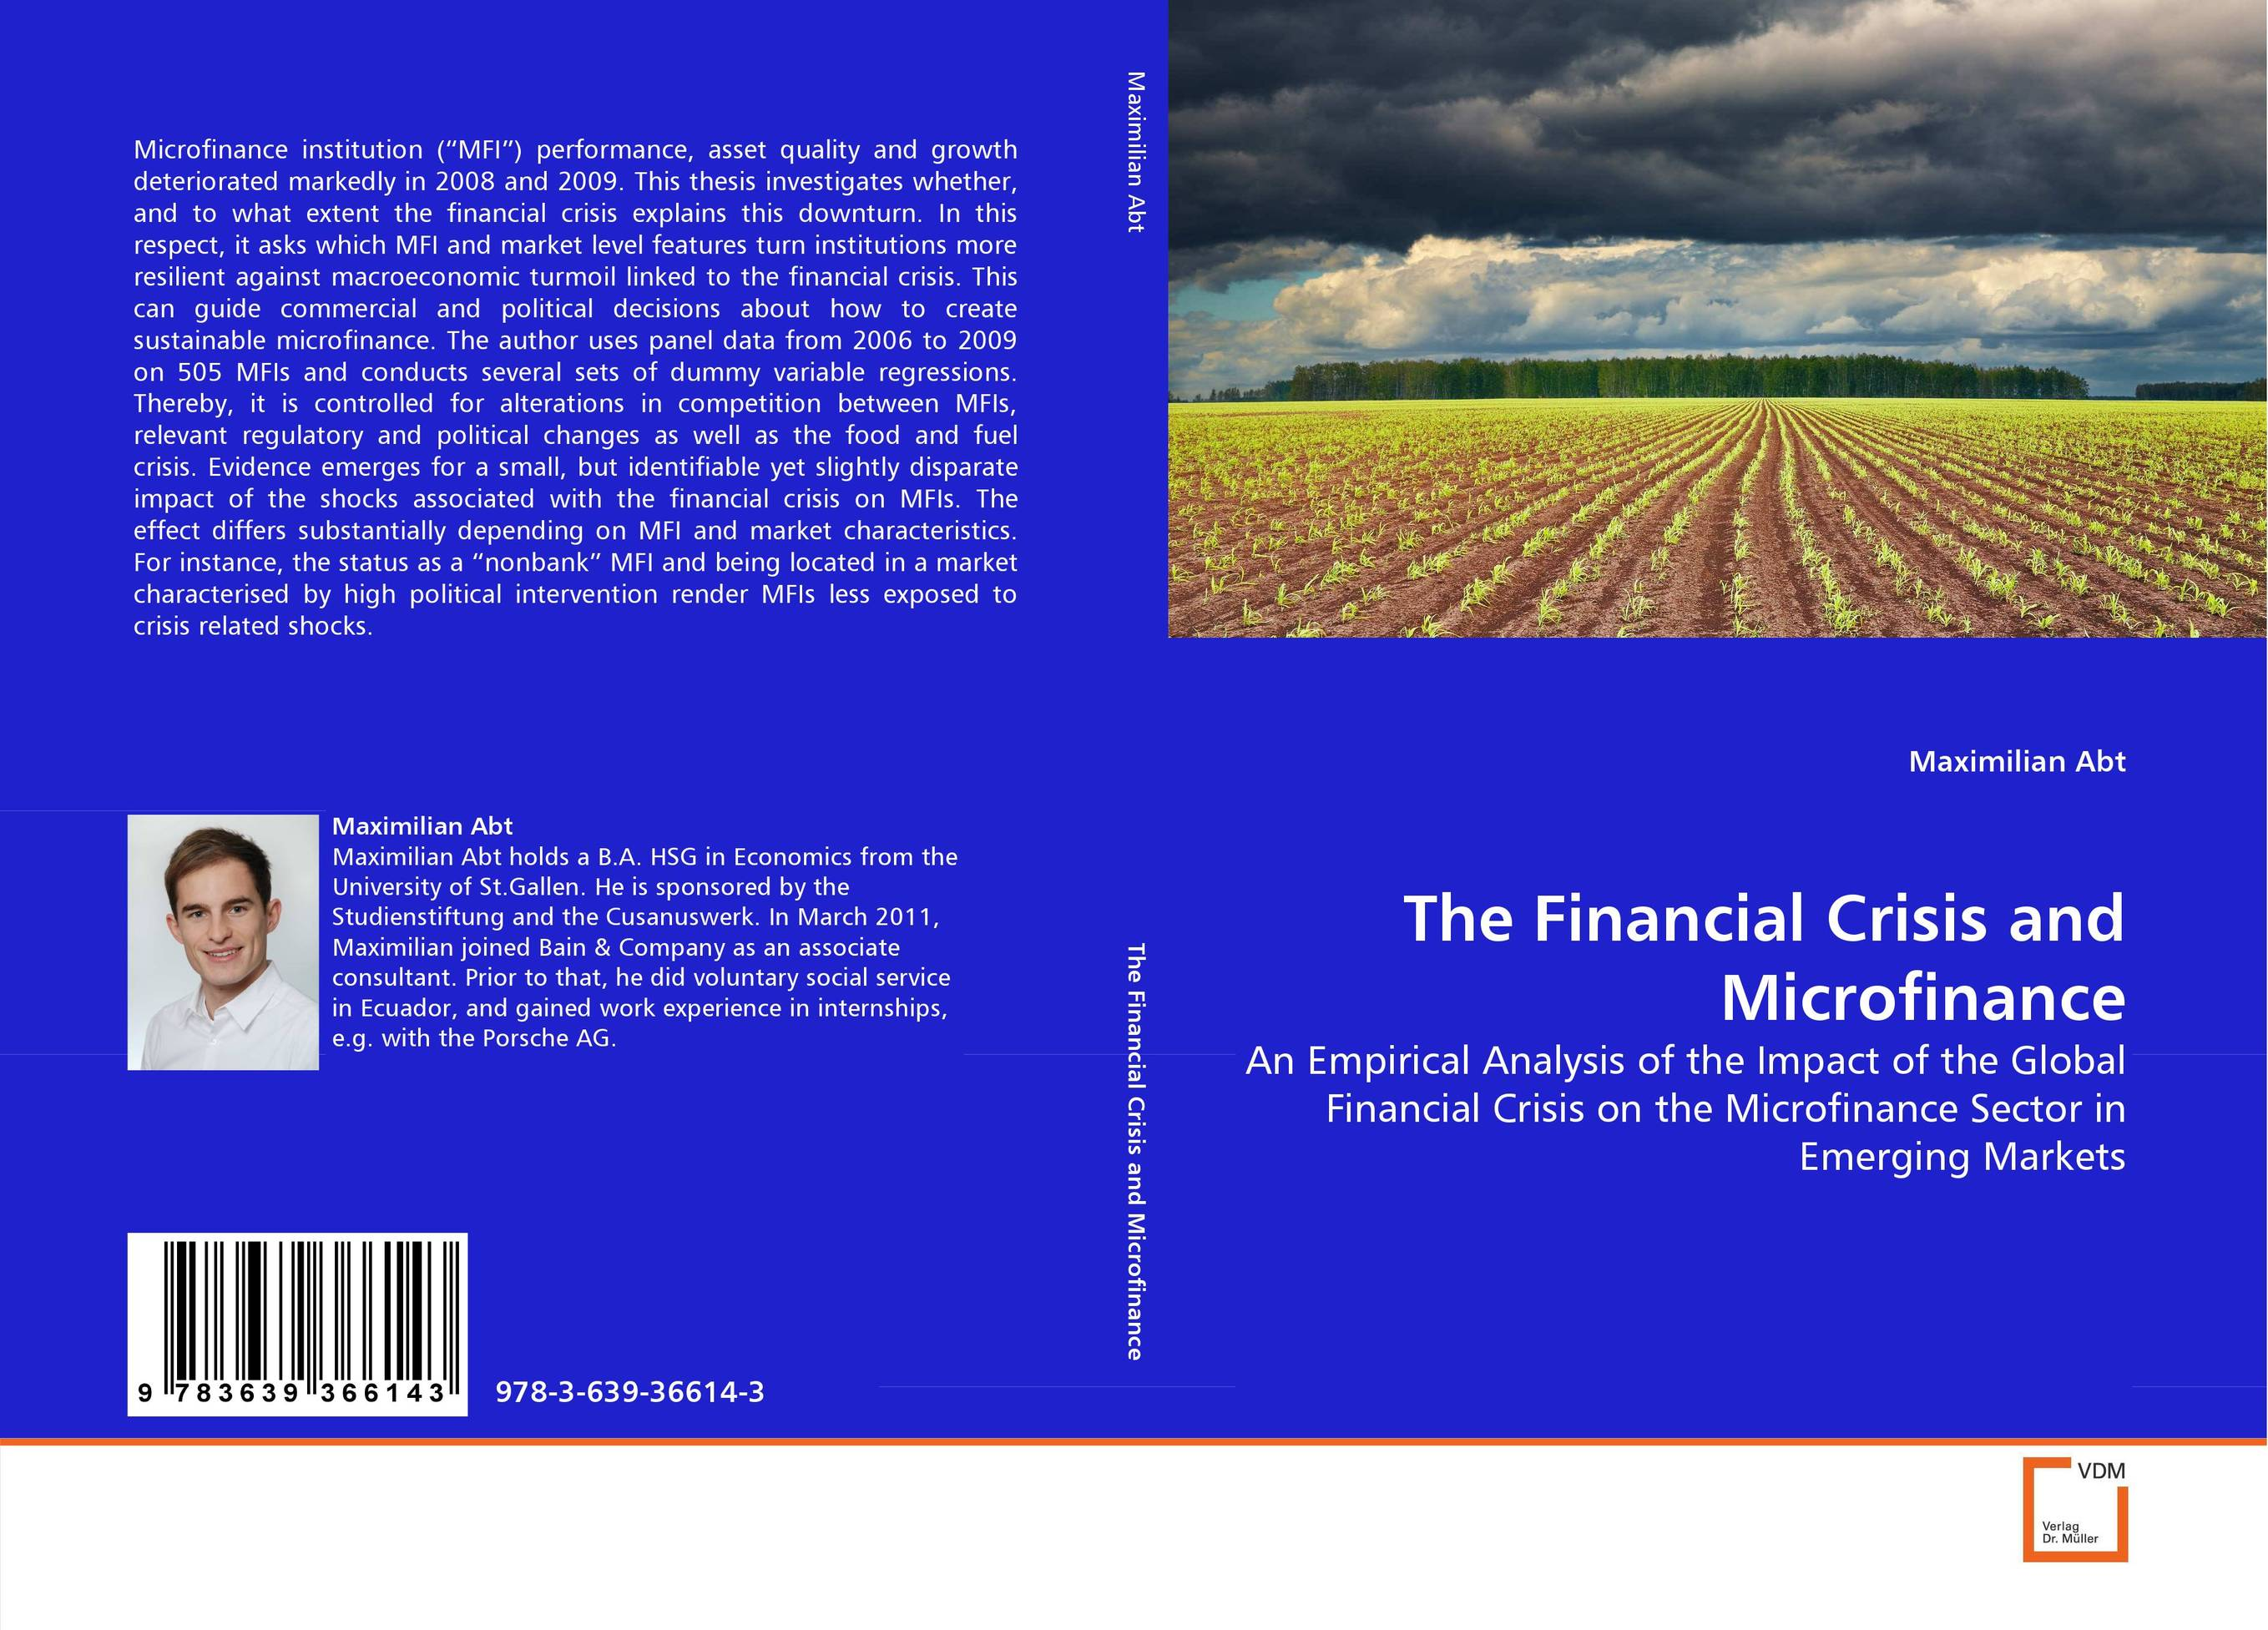 The Financial Crisis and Microfinance from financial crisis to economic and political distress